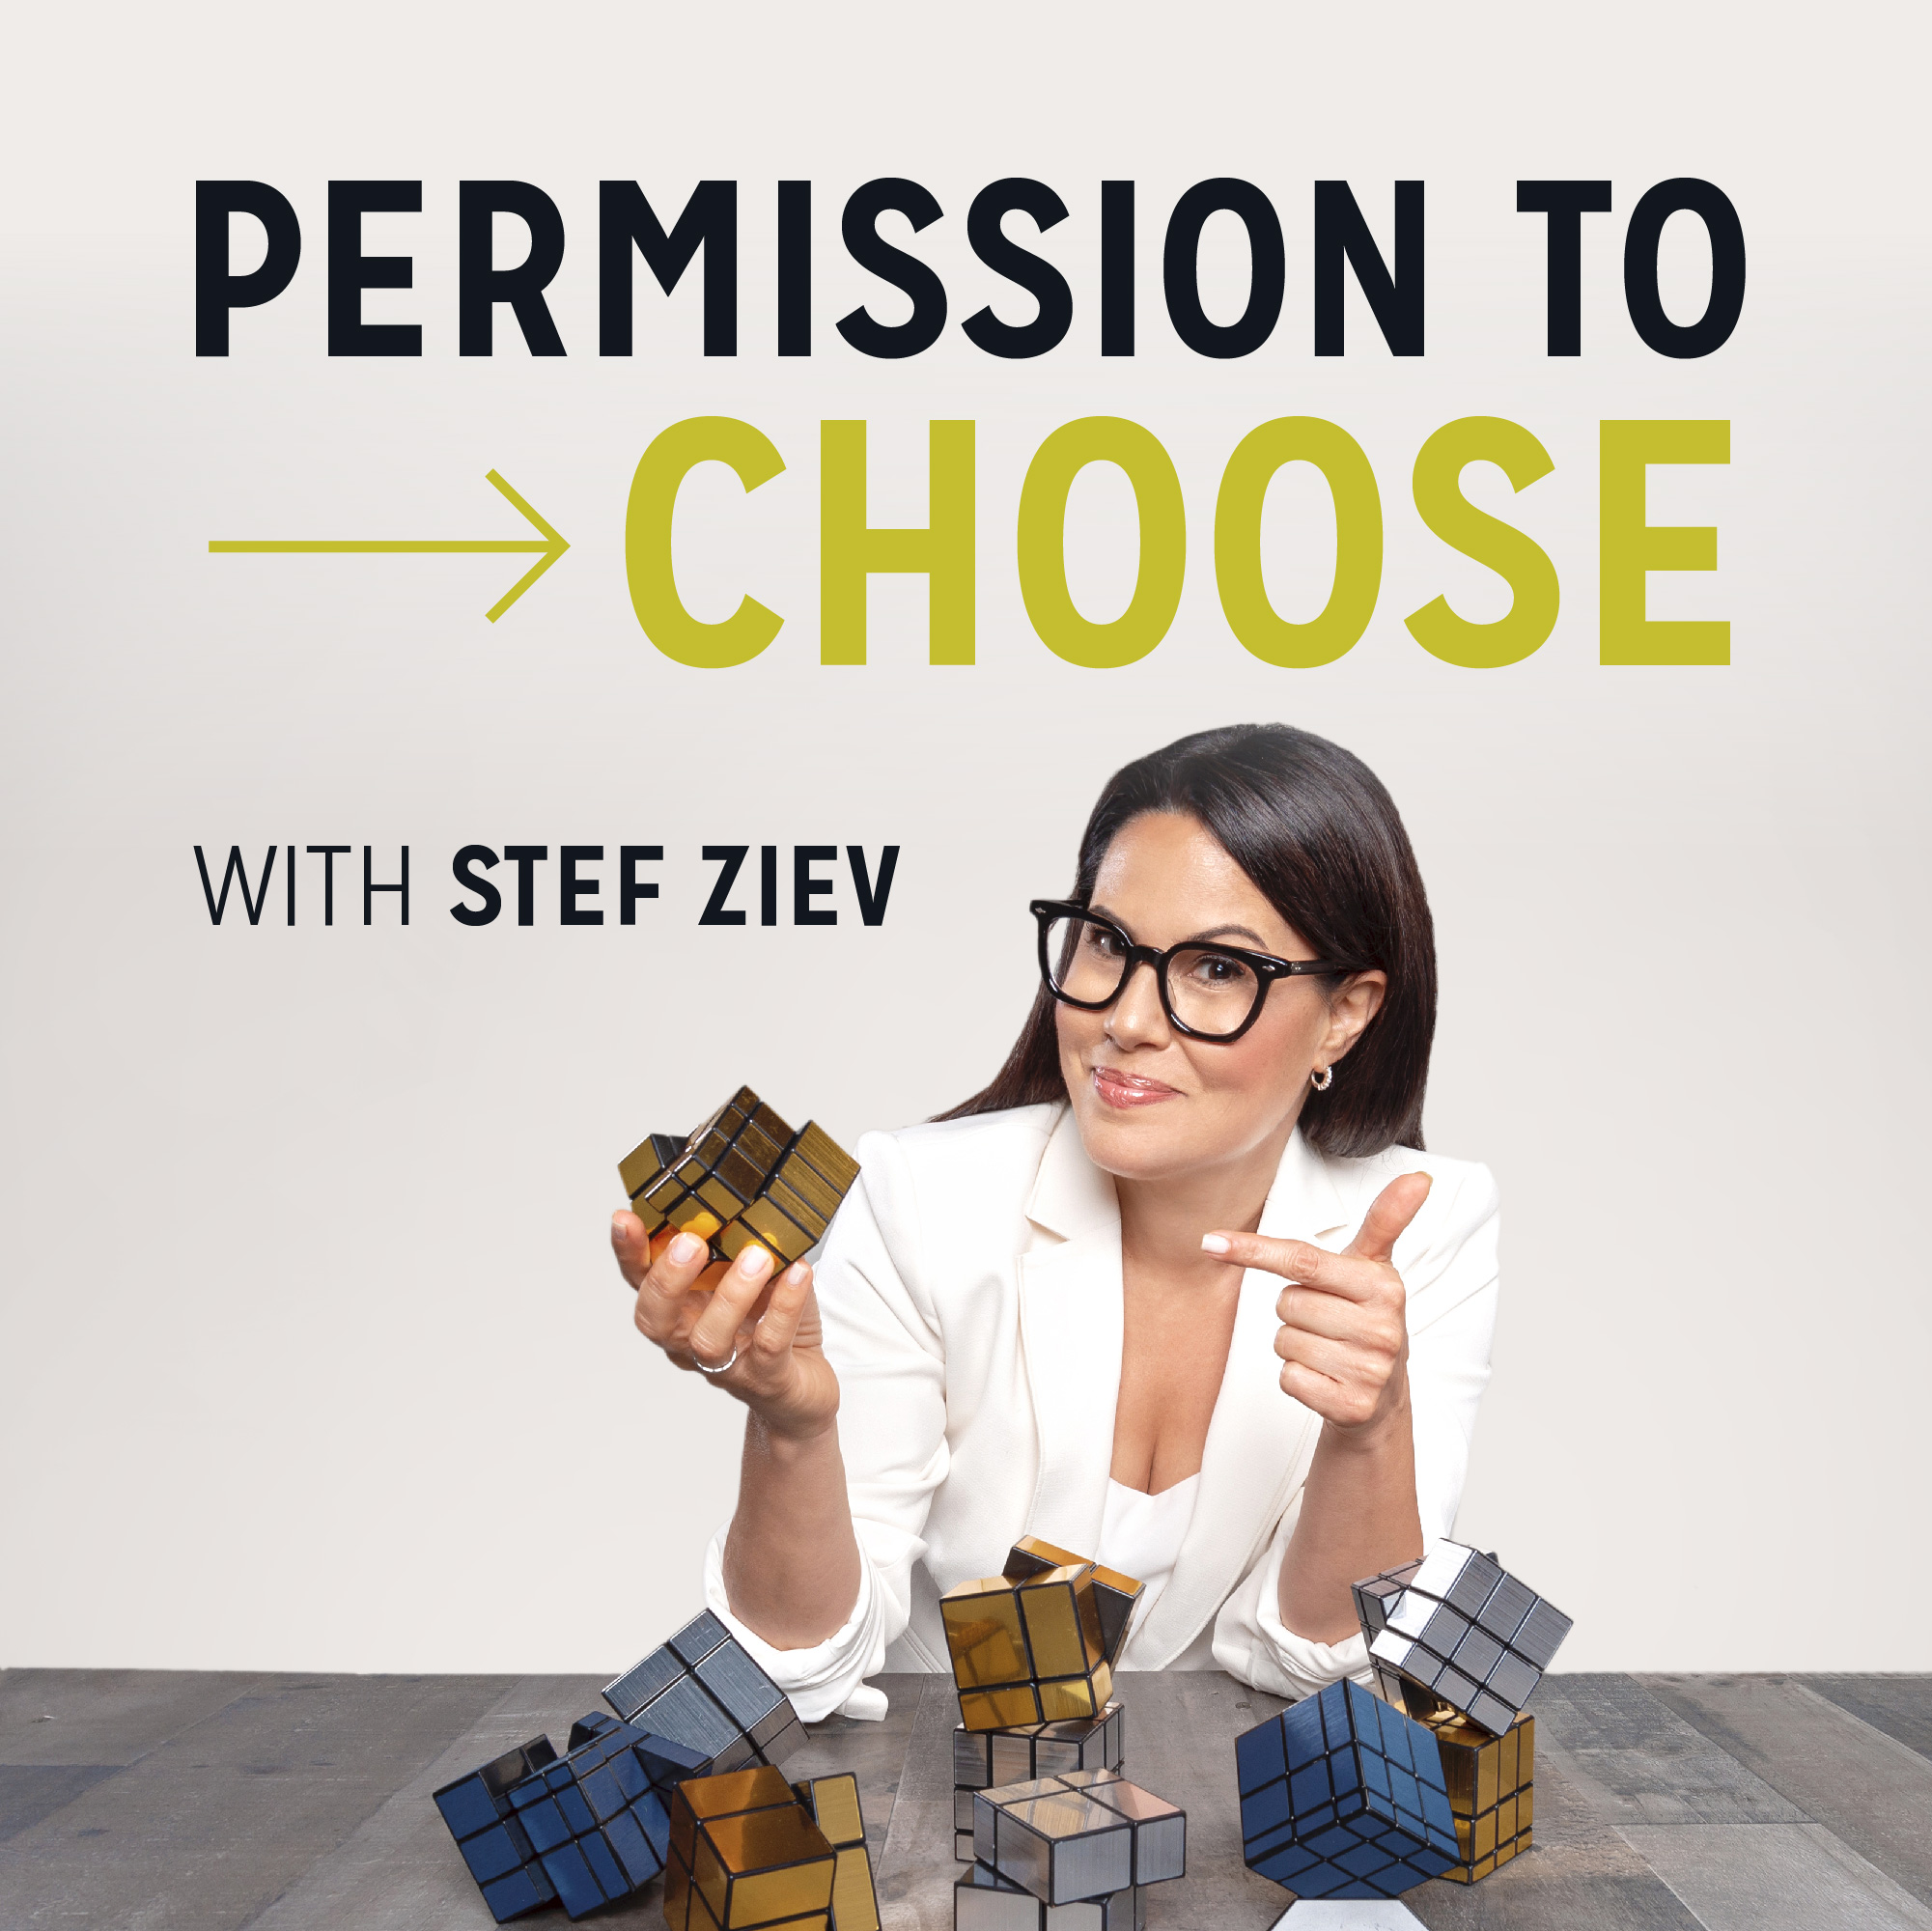 PERMISSION TO CHOOSE PODCAST